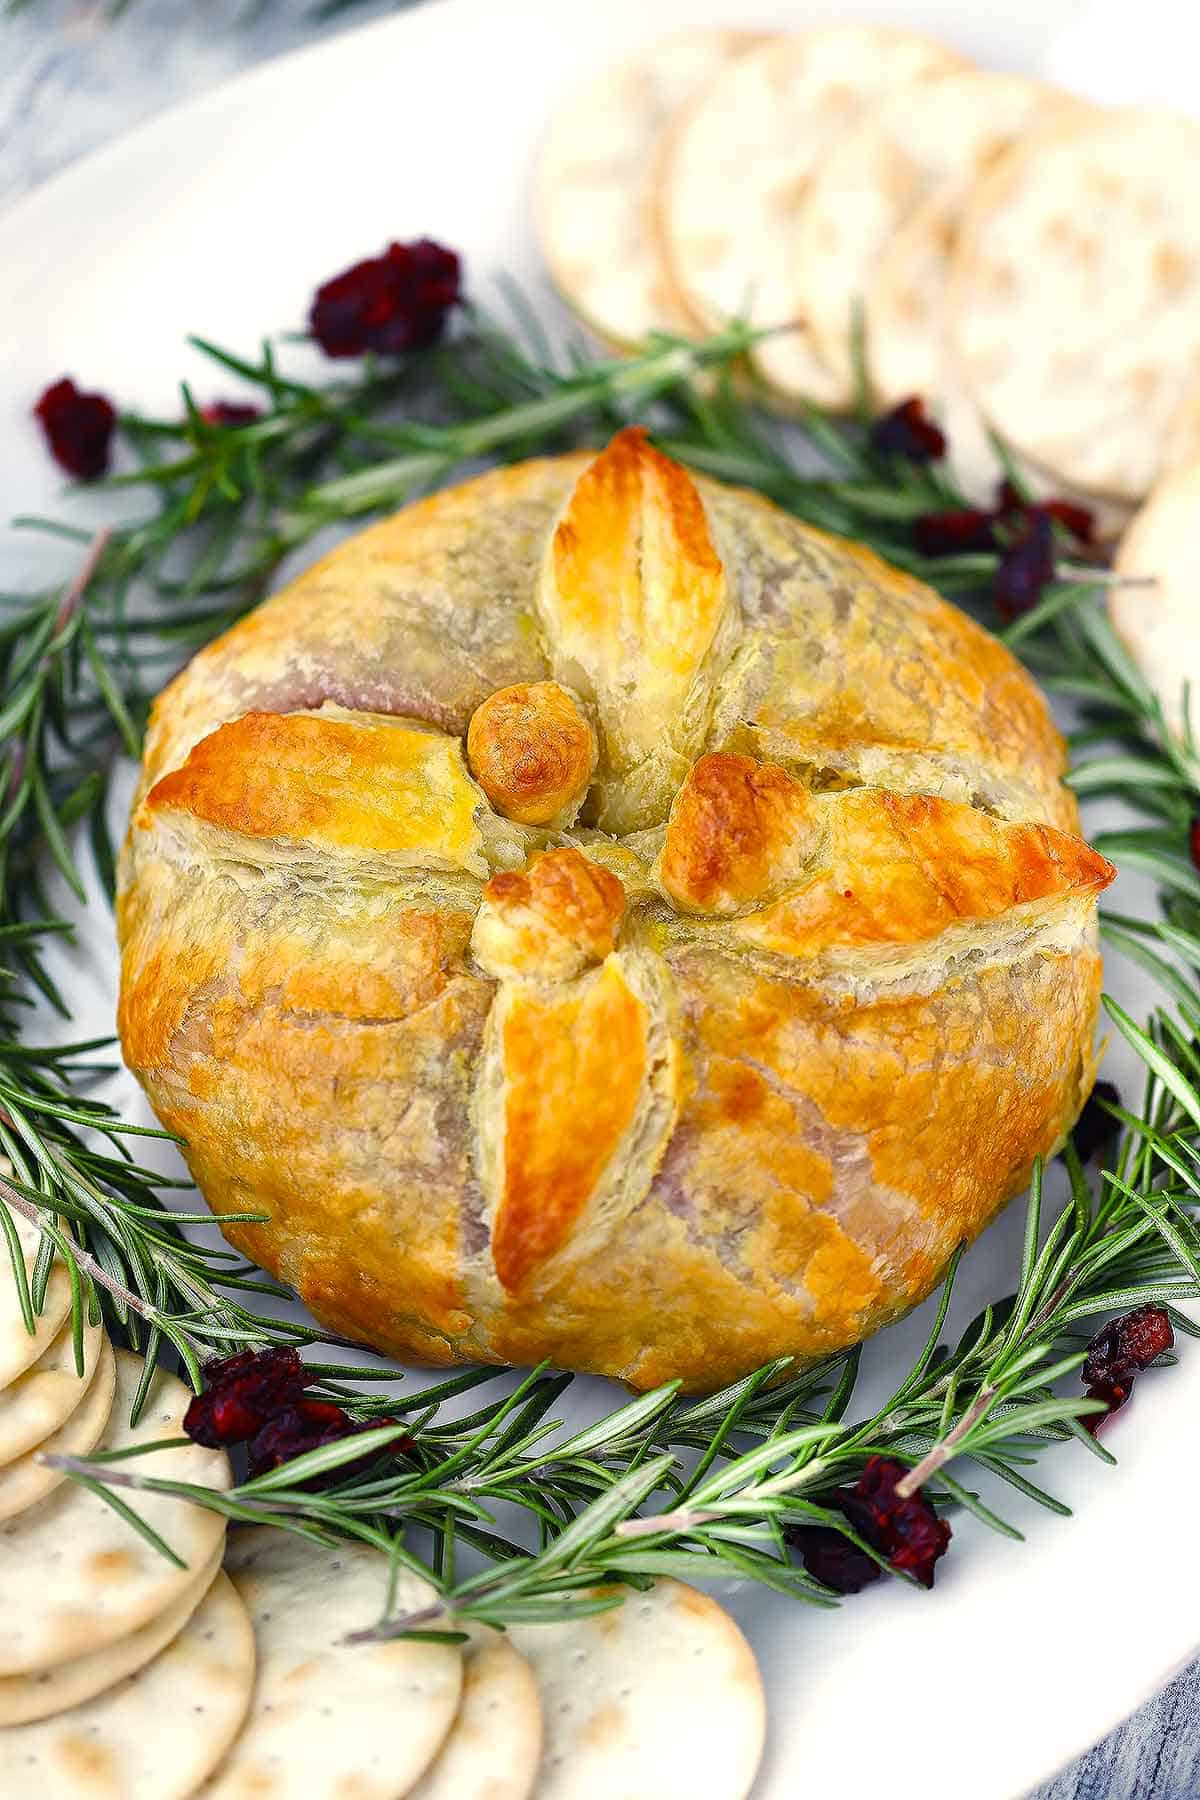 A baked brie en croute decorated with puff pastry leaves and berries on a platter with rosemary, cranberries, and water crackers around it.